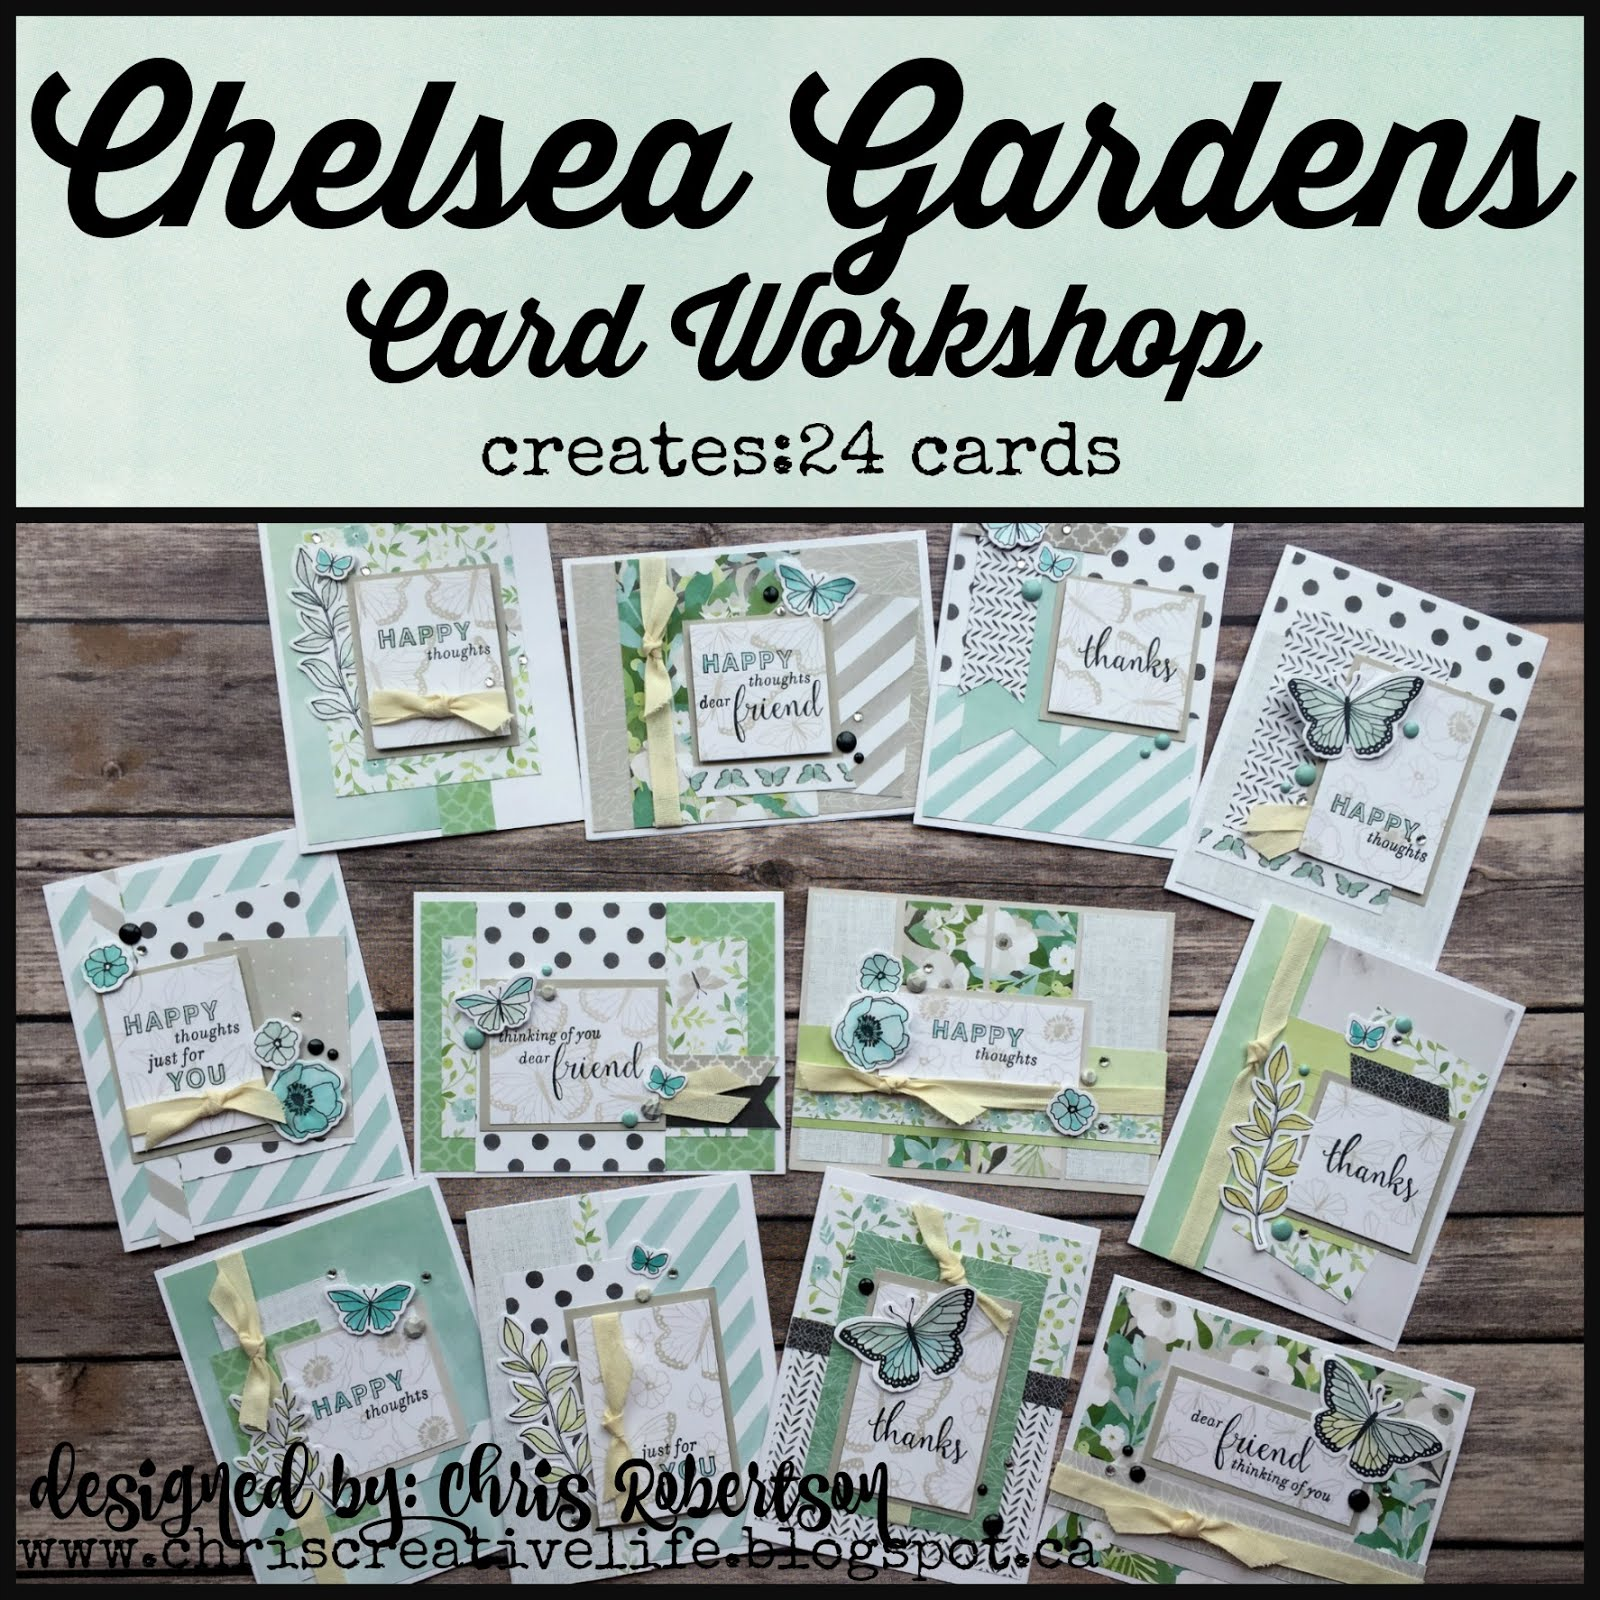 Chelsea Garden Cardmaking Workshop